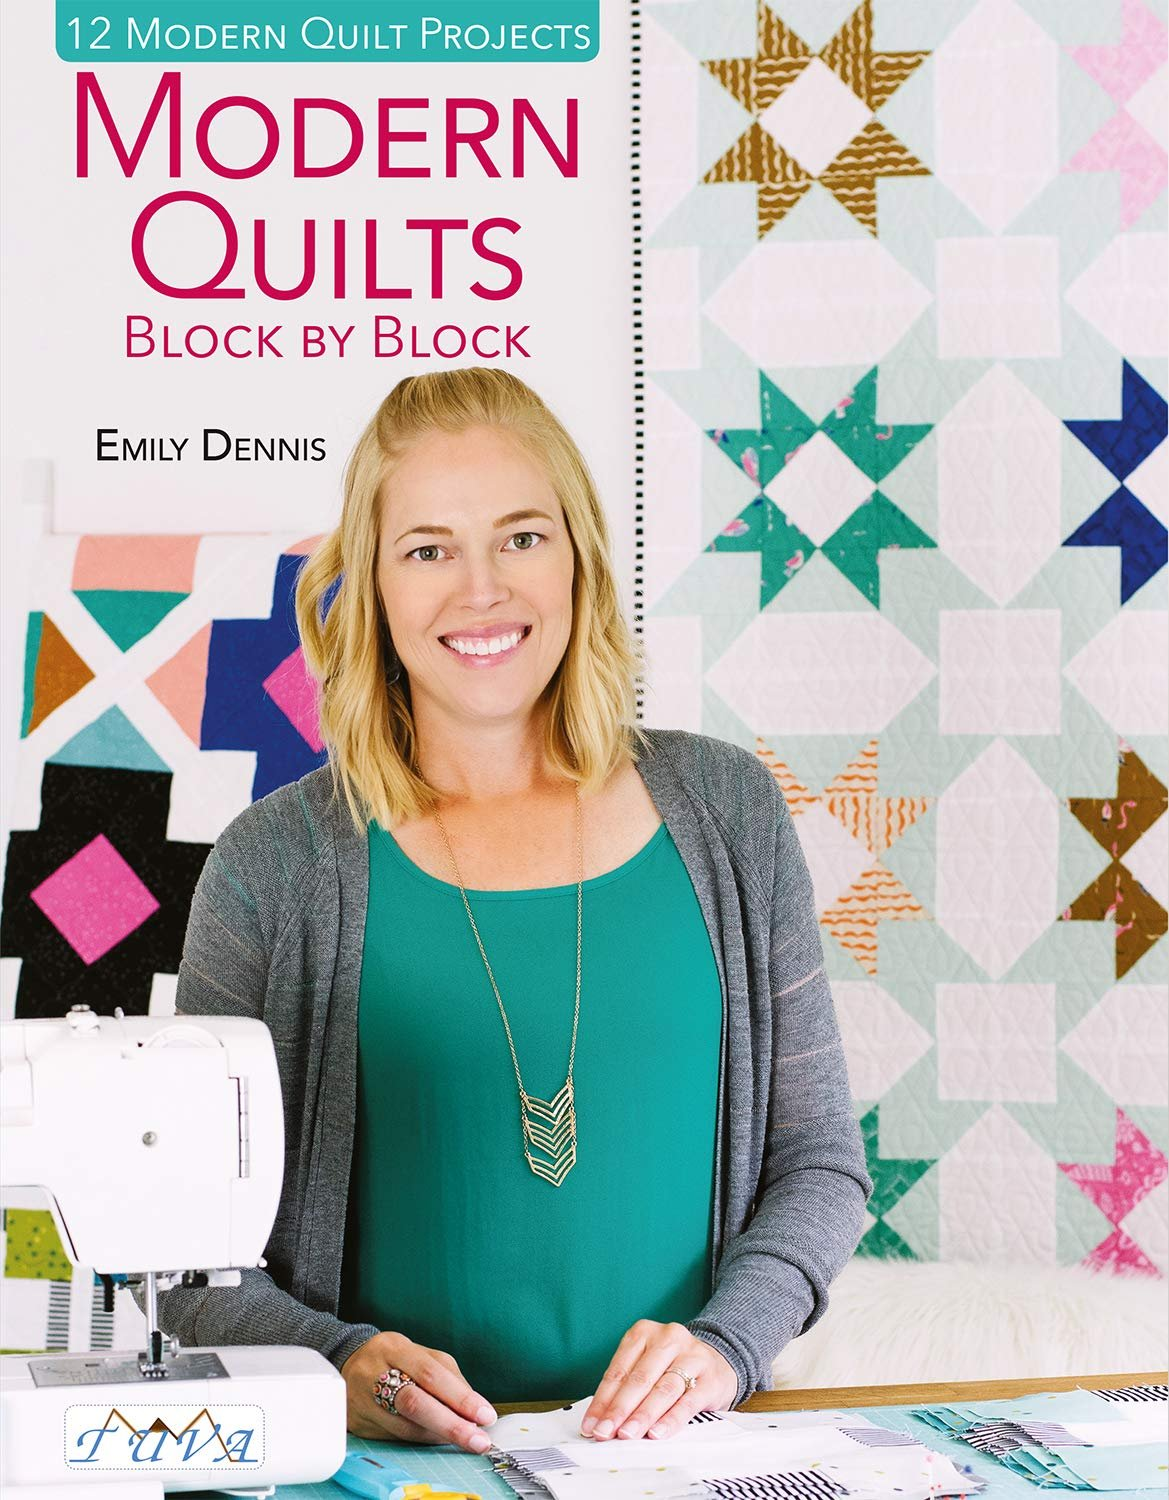 Modern Quilts Block by Block by Emily Dennis